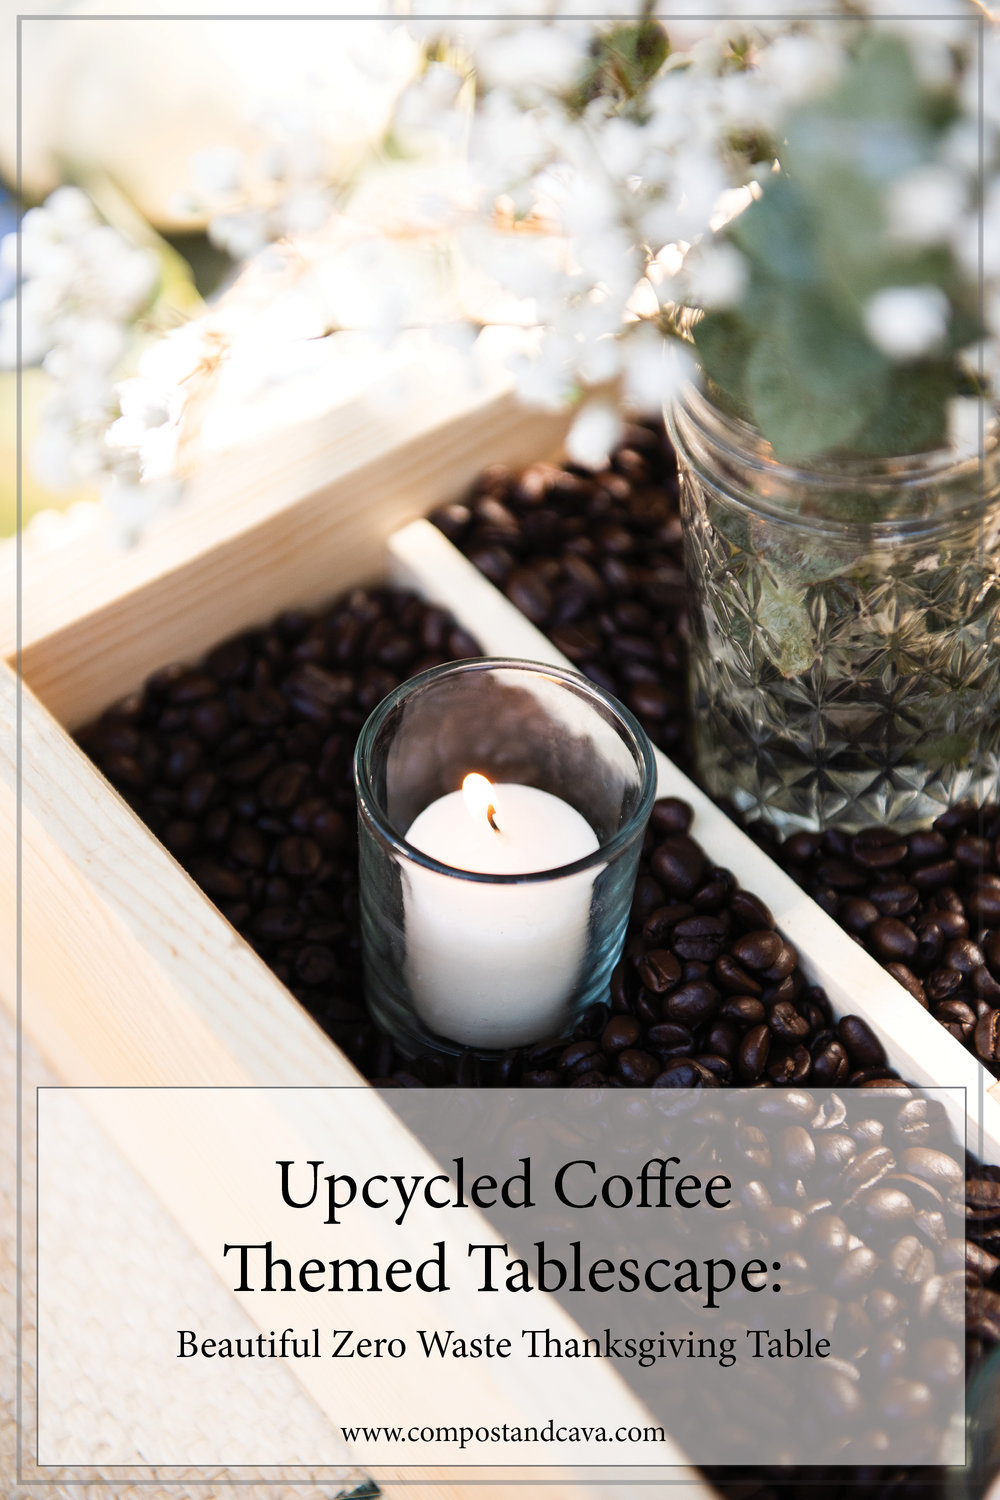 Upcycled Coffee Themed Tablescape